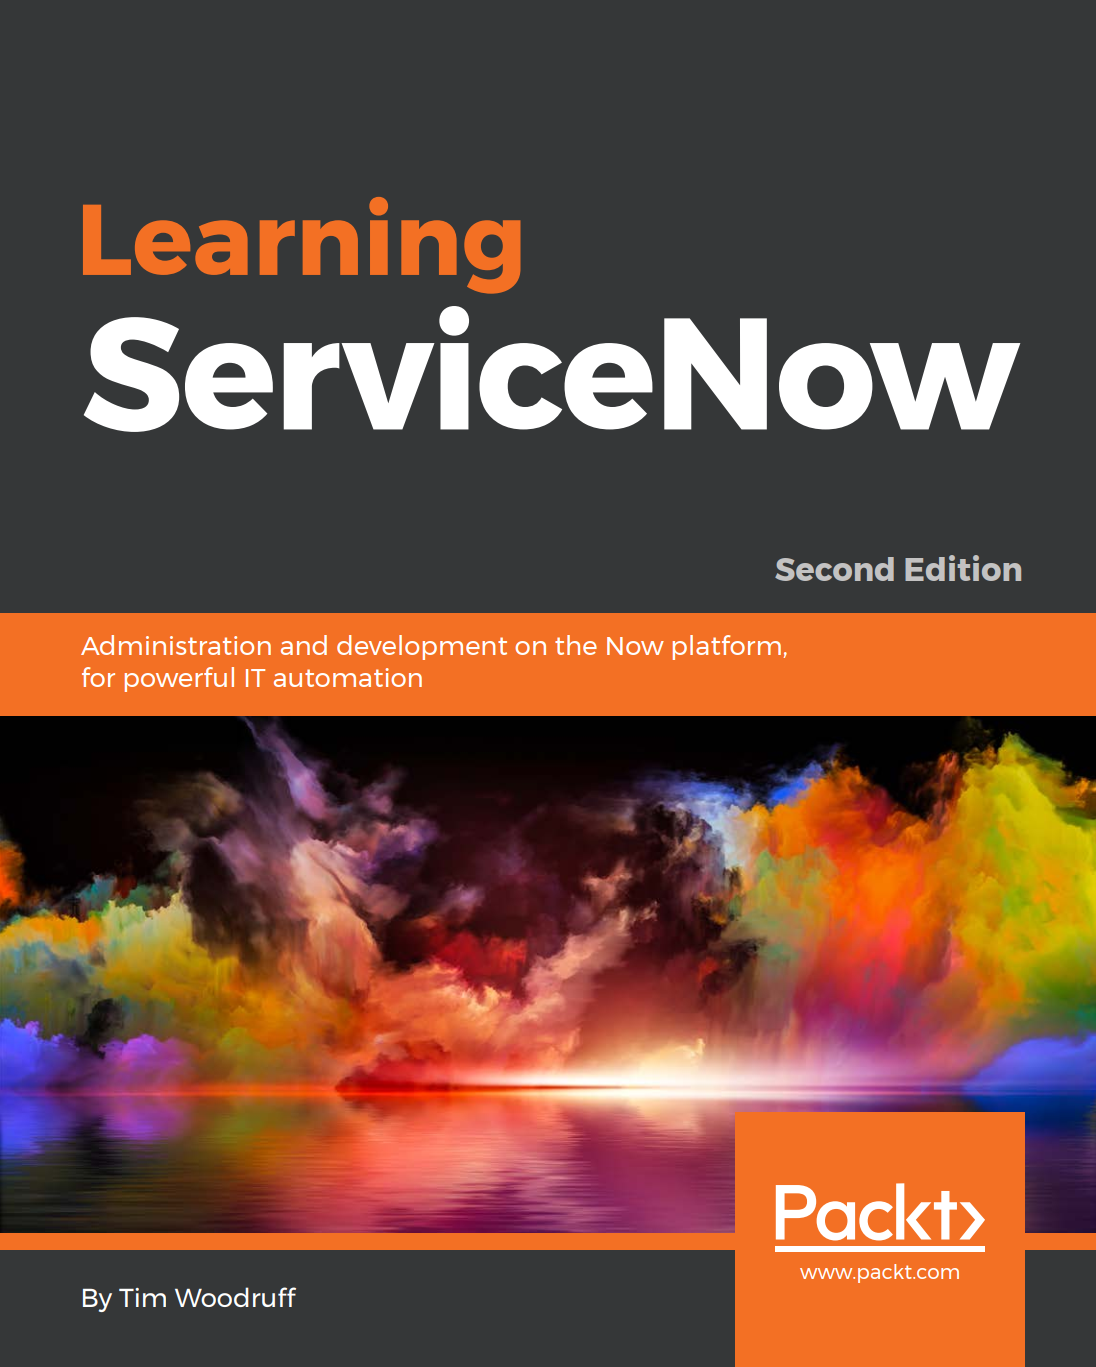 learning servicenow book